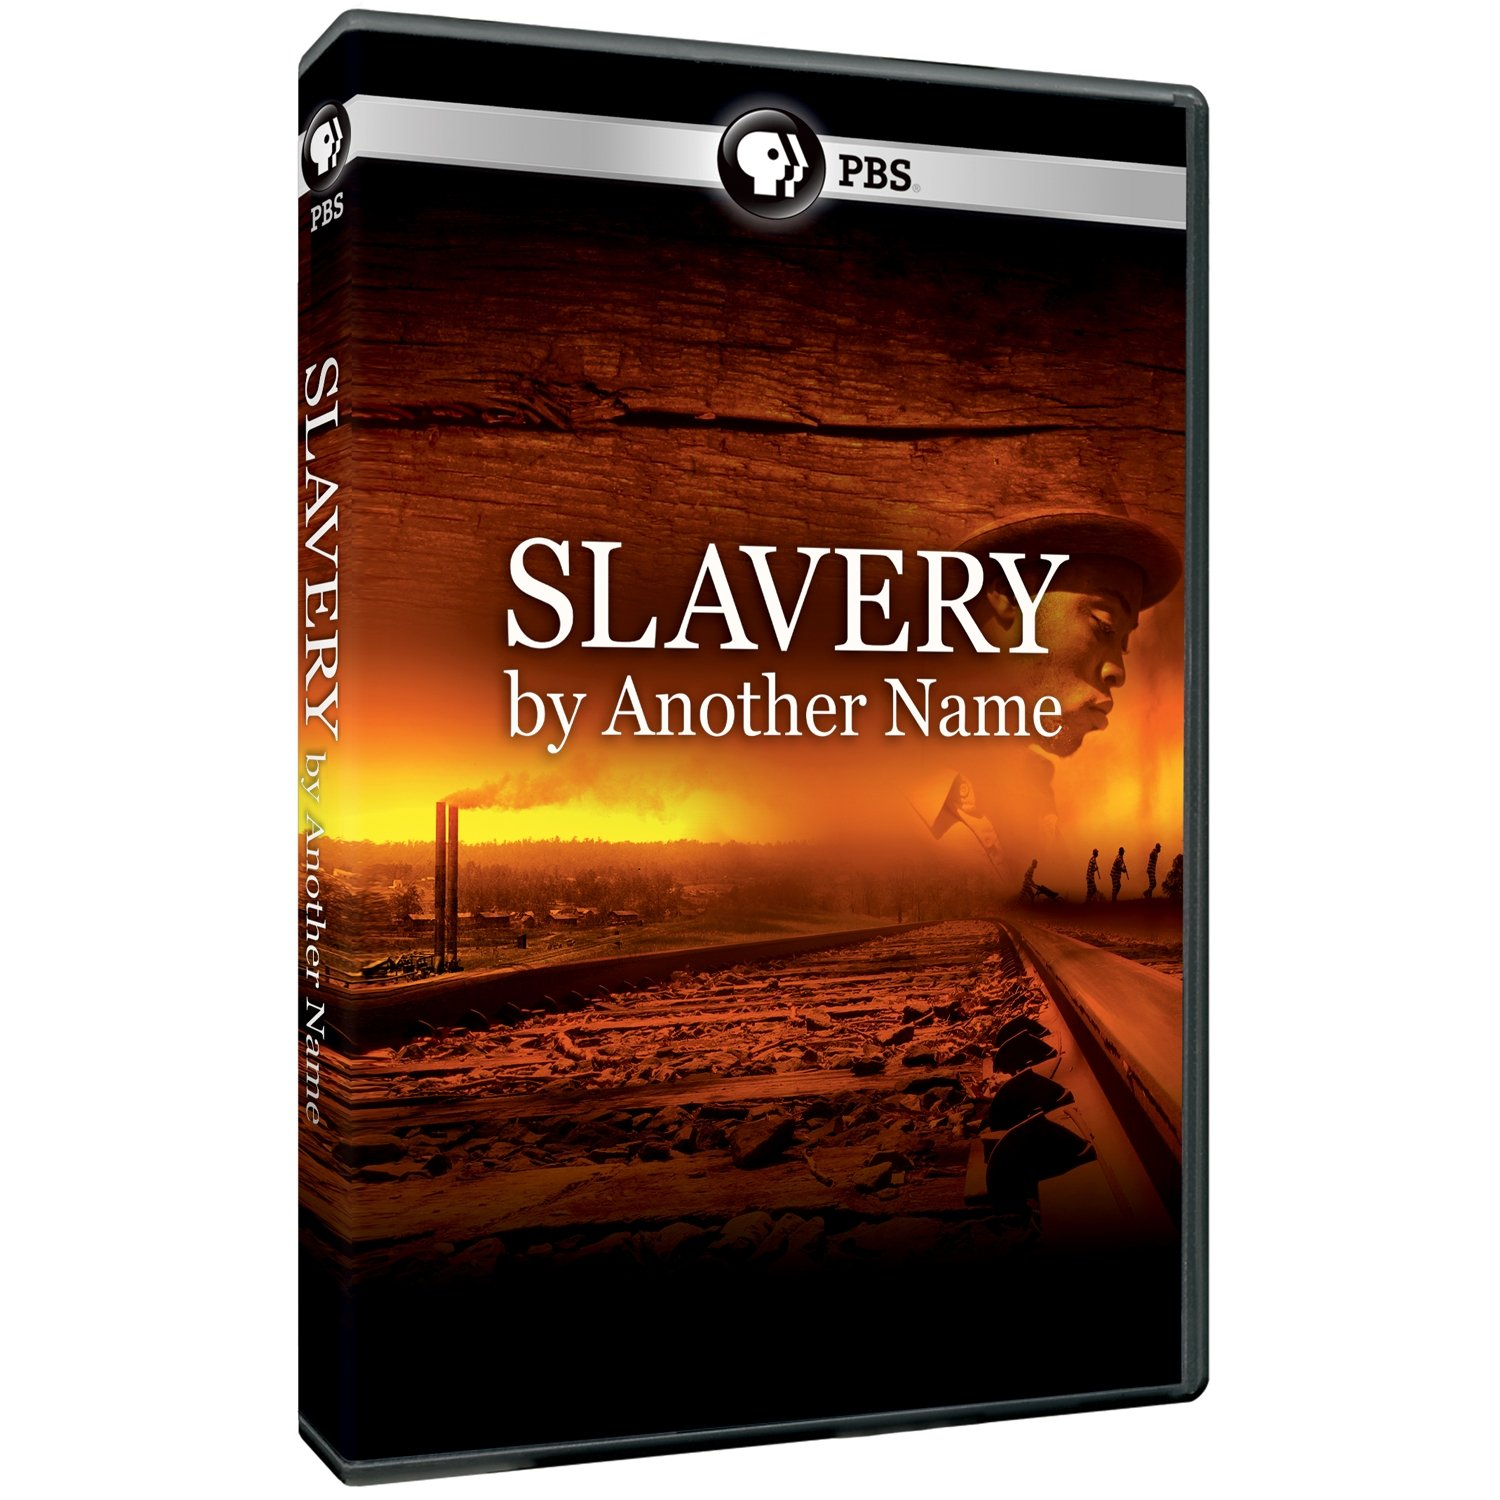 Amazon.com: Slavery By Another Name: ., Sam Pollard: Movies & TV